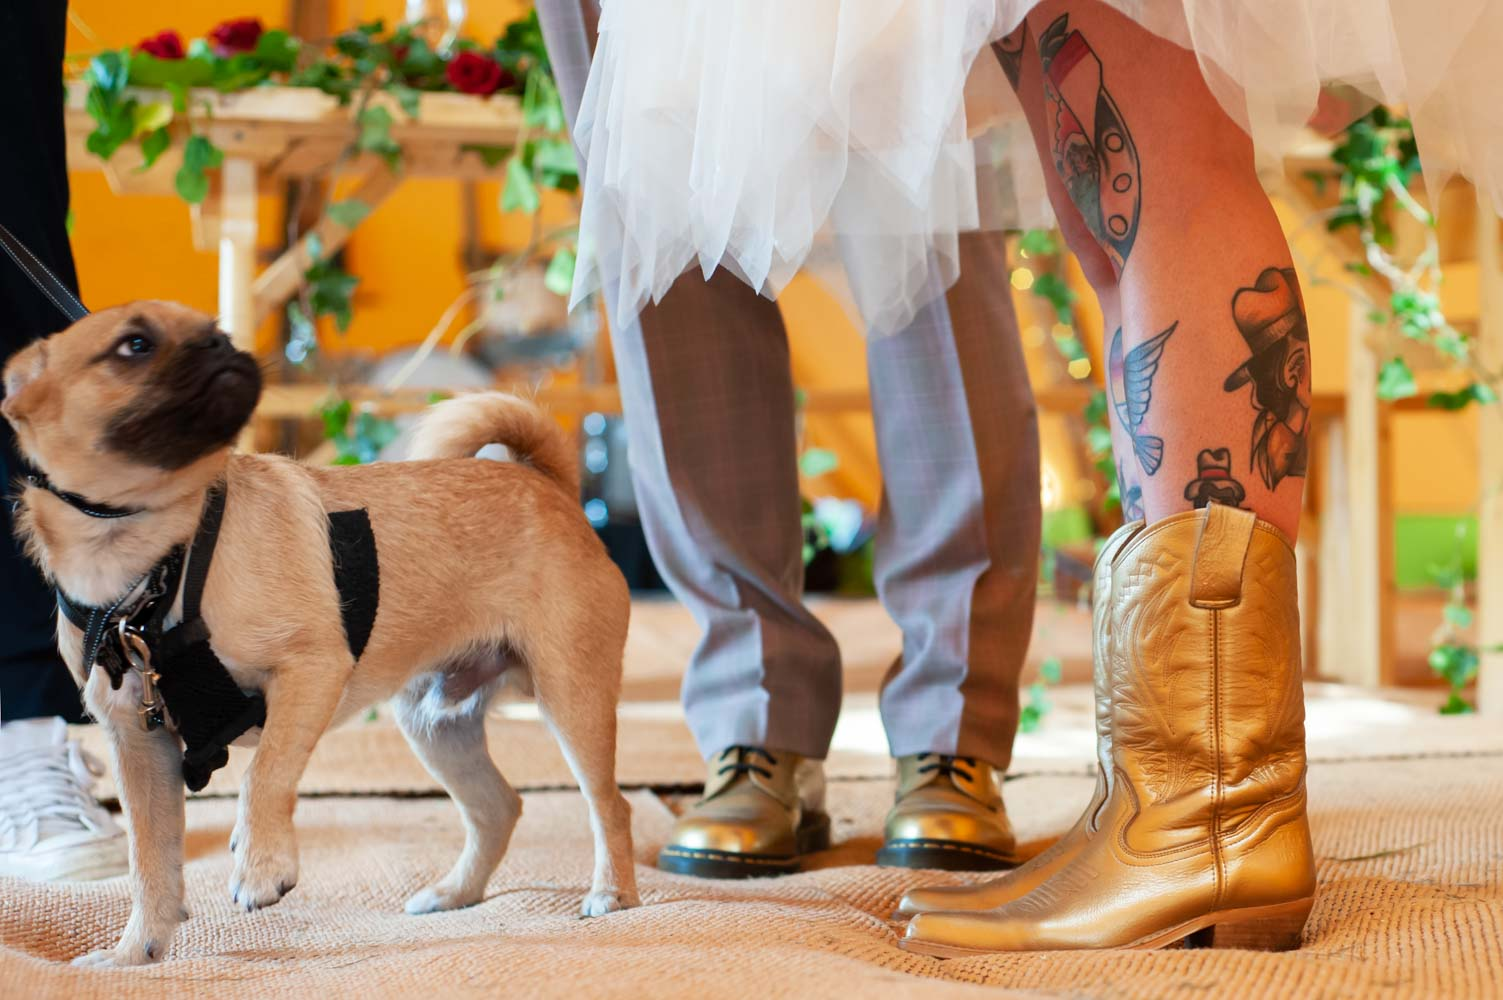 Bride and grooms gold shoes by alternative sussex wedding photographer James Robertshaw